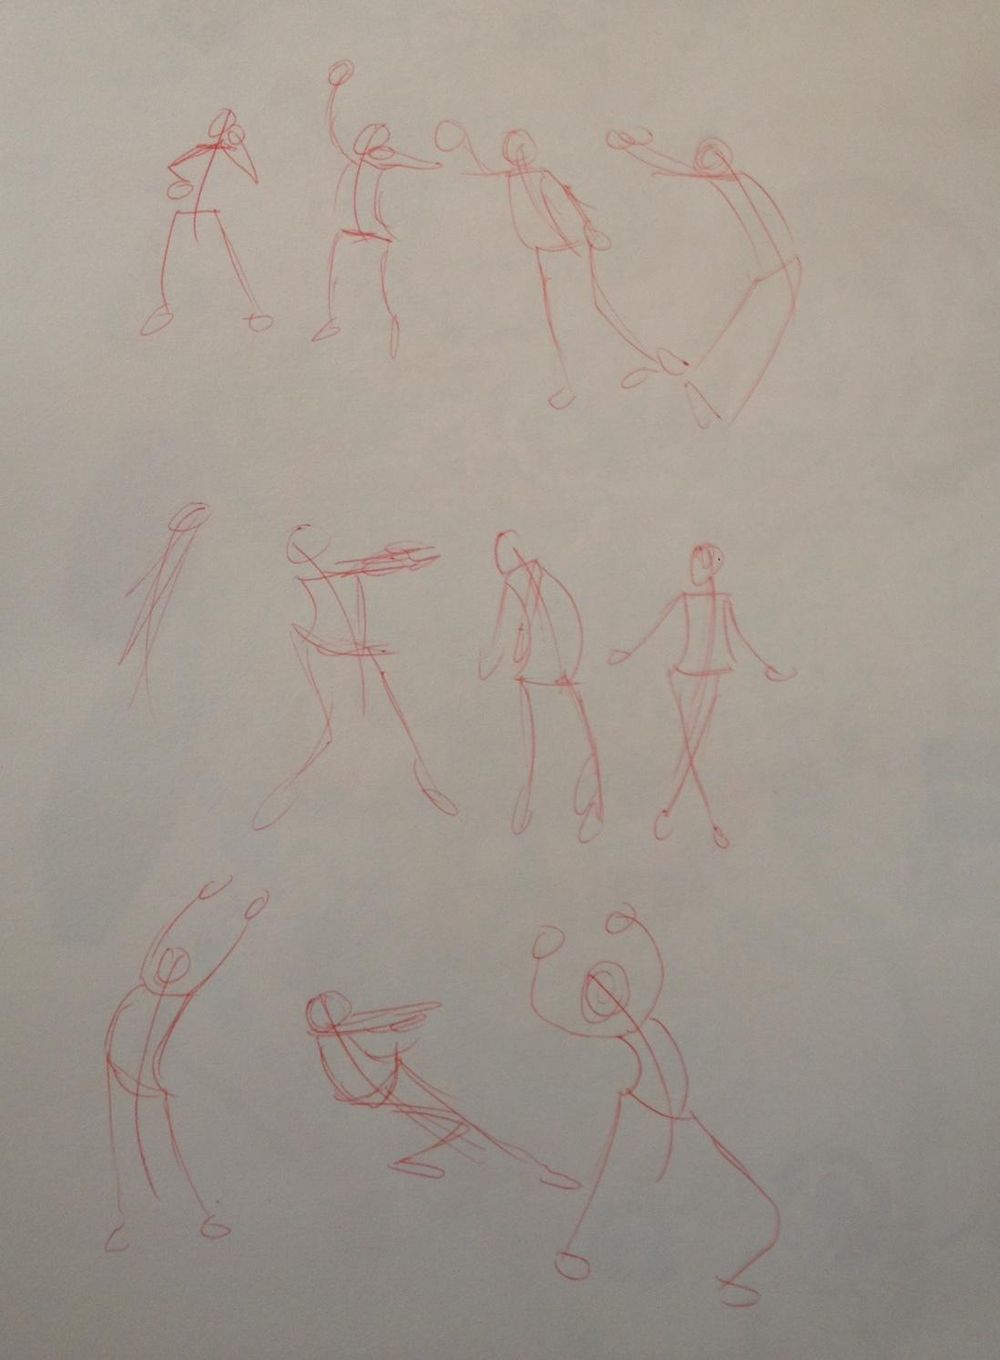 Stick Figure drawings - image 1 - student project